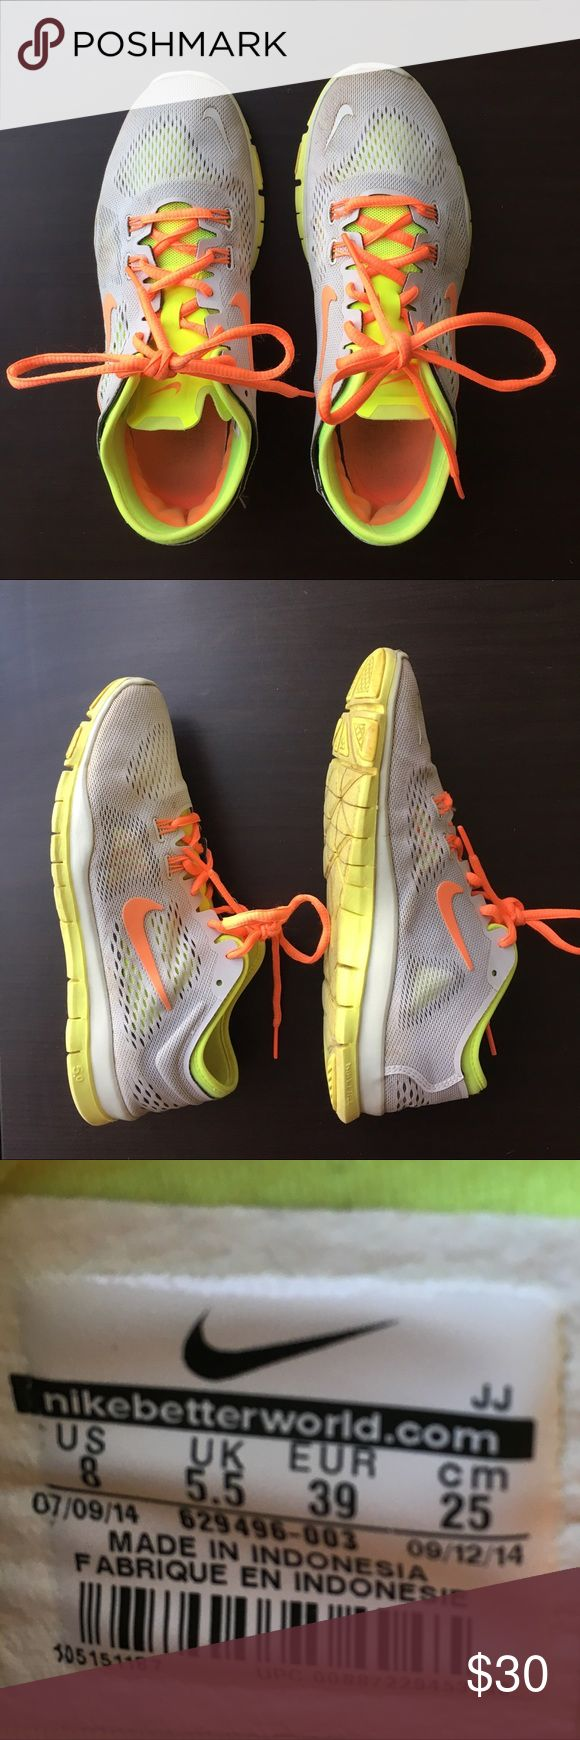 Light Grey & Neon Nike Shoes Light grey/neon/orange Nike Free TR Fit 4. 3 years old but well taken care of. Great for walking, running, or casual wear. Have a lot of life left in them! Nike Shoes Athletic Shoes